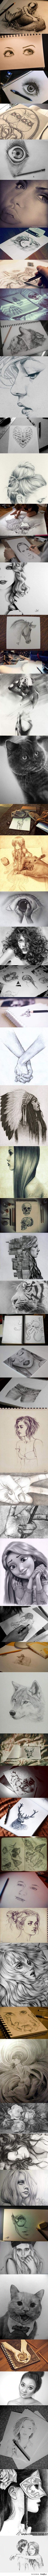 i applaud artists and their pure magic, its nothing short of perfection